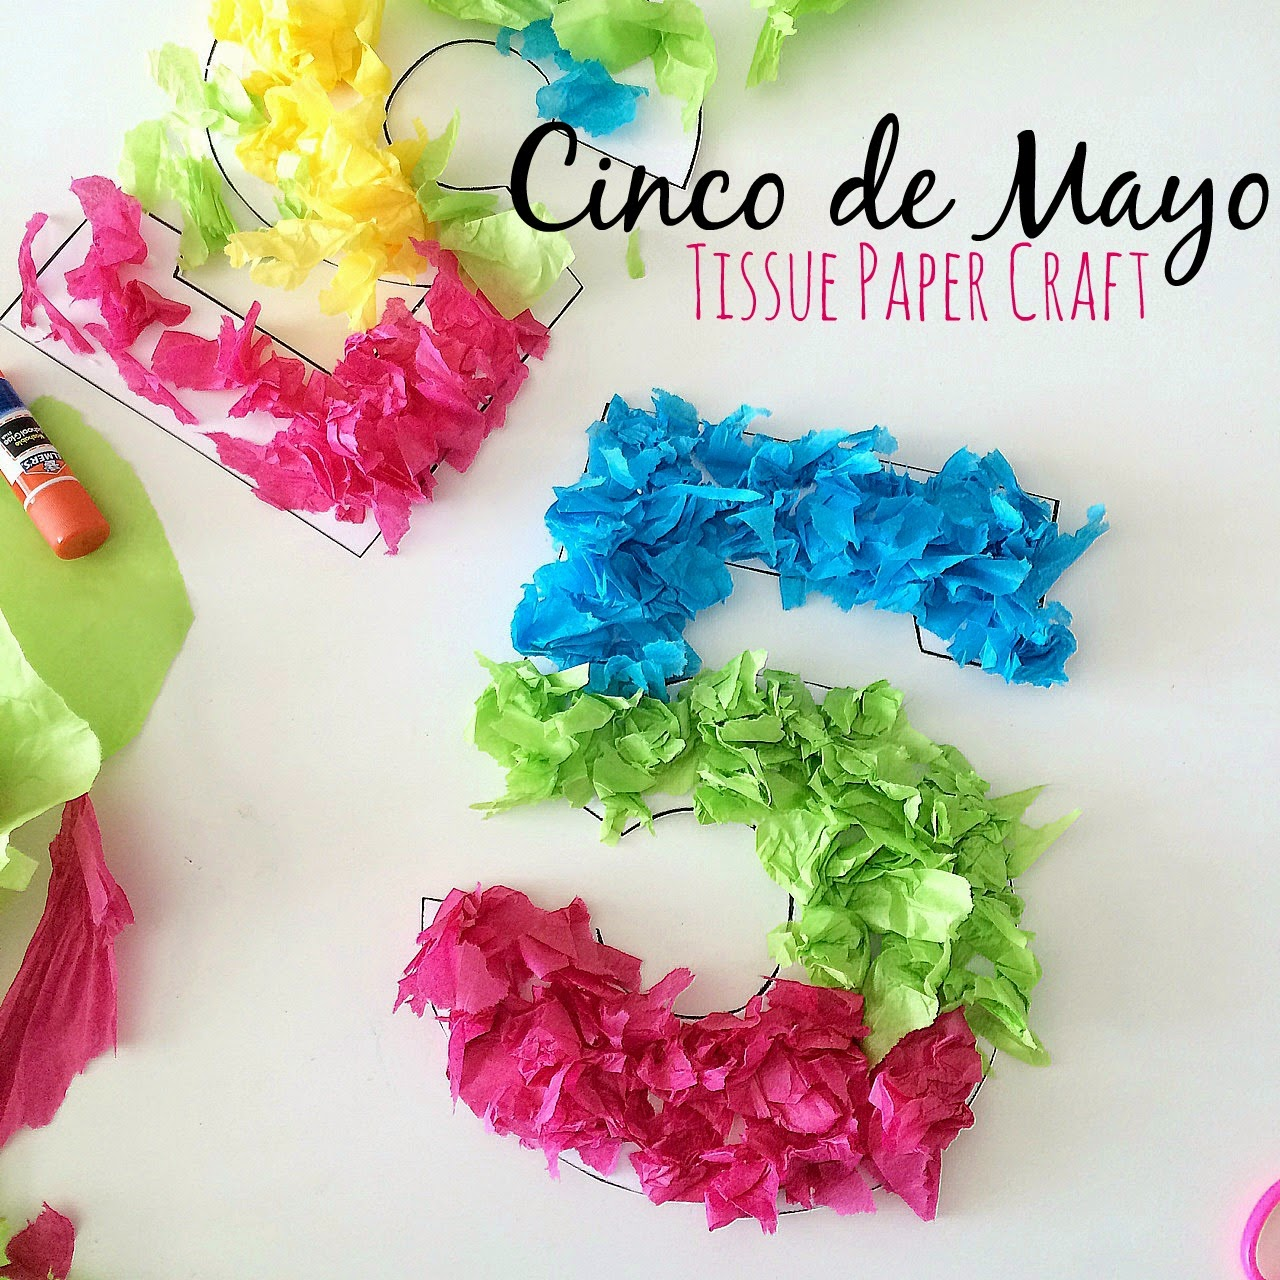 Blue Skies Ahead Cinco De Mayo Tissue Paper Craft